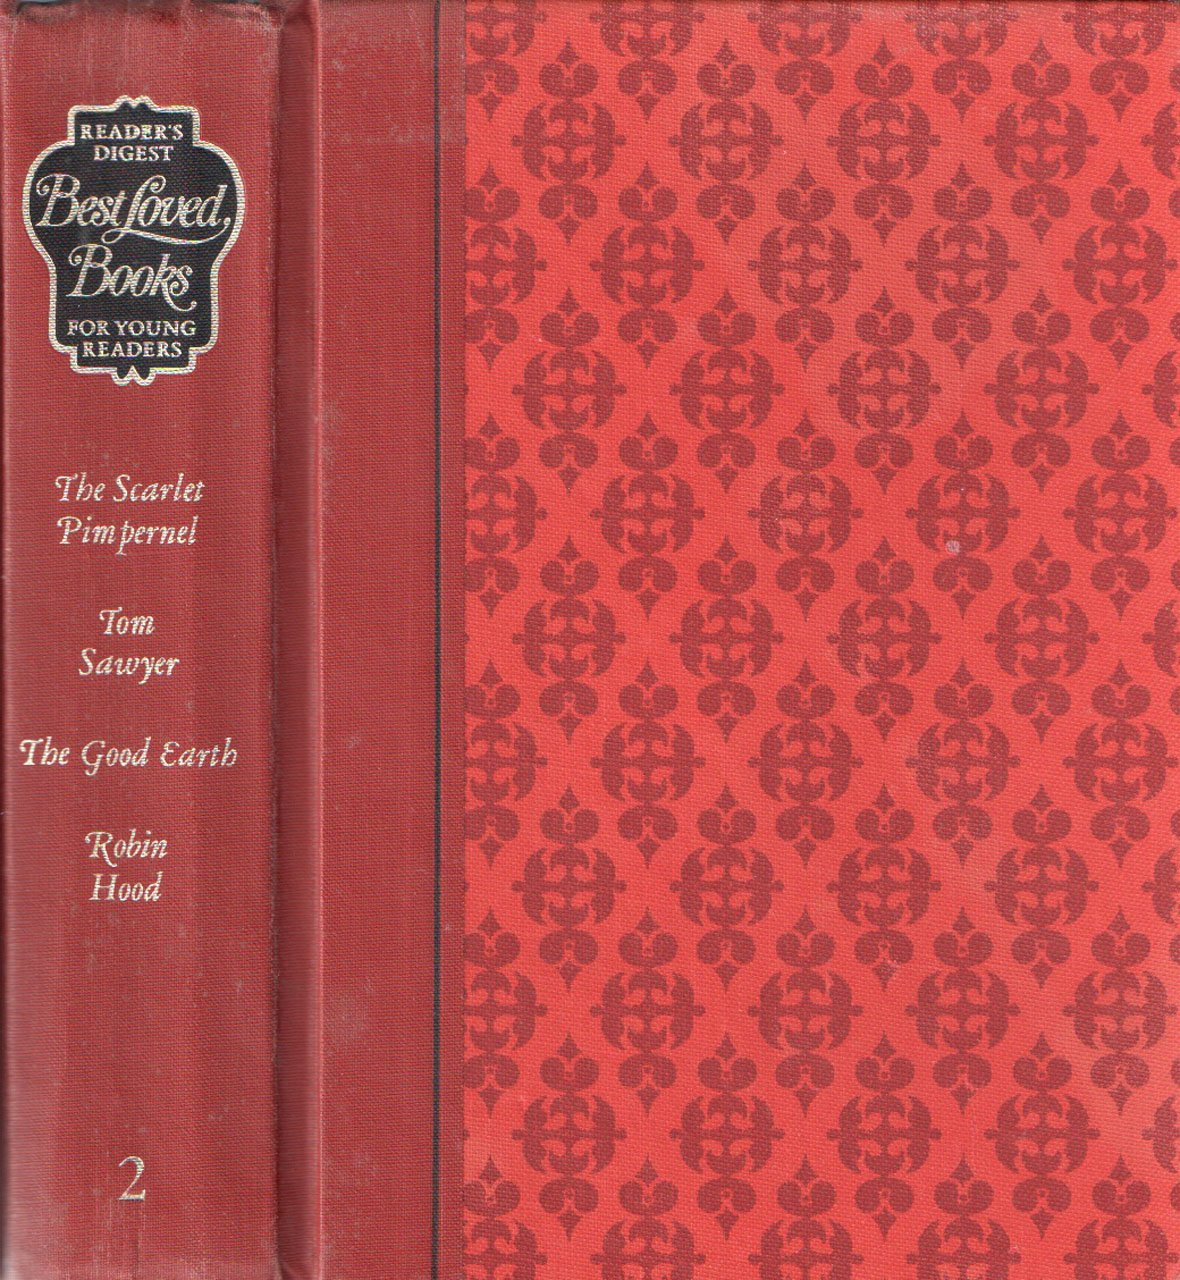 Reader S Digest Best Loved Books For Young Readers The Scarlet Pimpernel Tom Sawyer The Good Earth Robin Hood Volume 2 Reader S Digest Amazon Com Books Are old readers digest books worth any